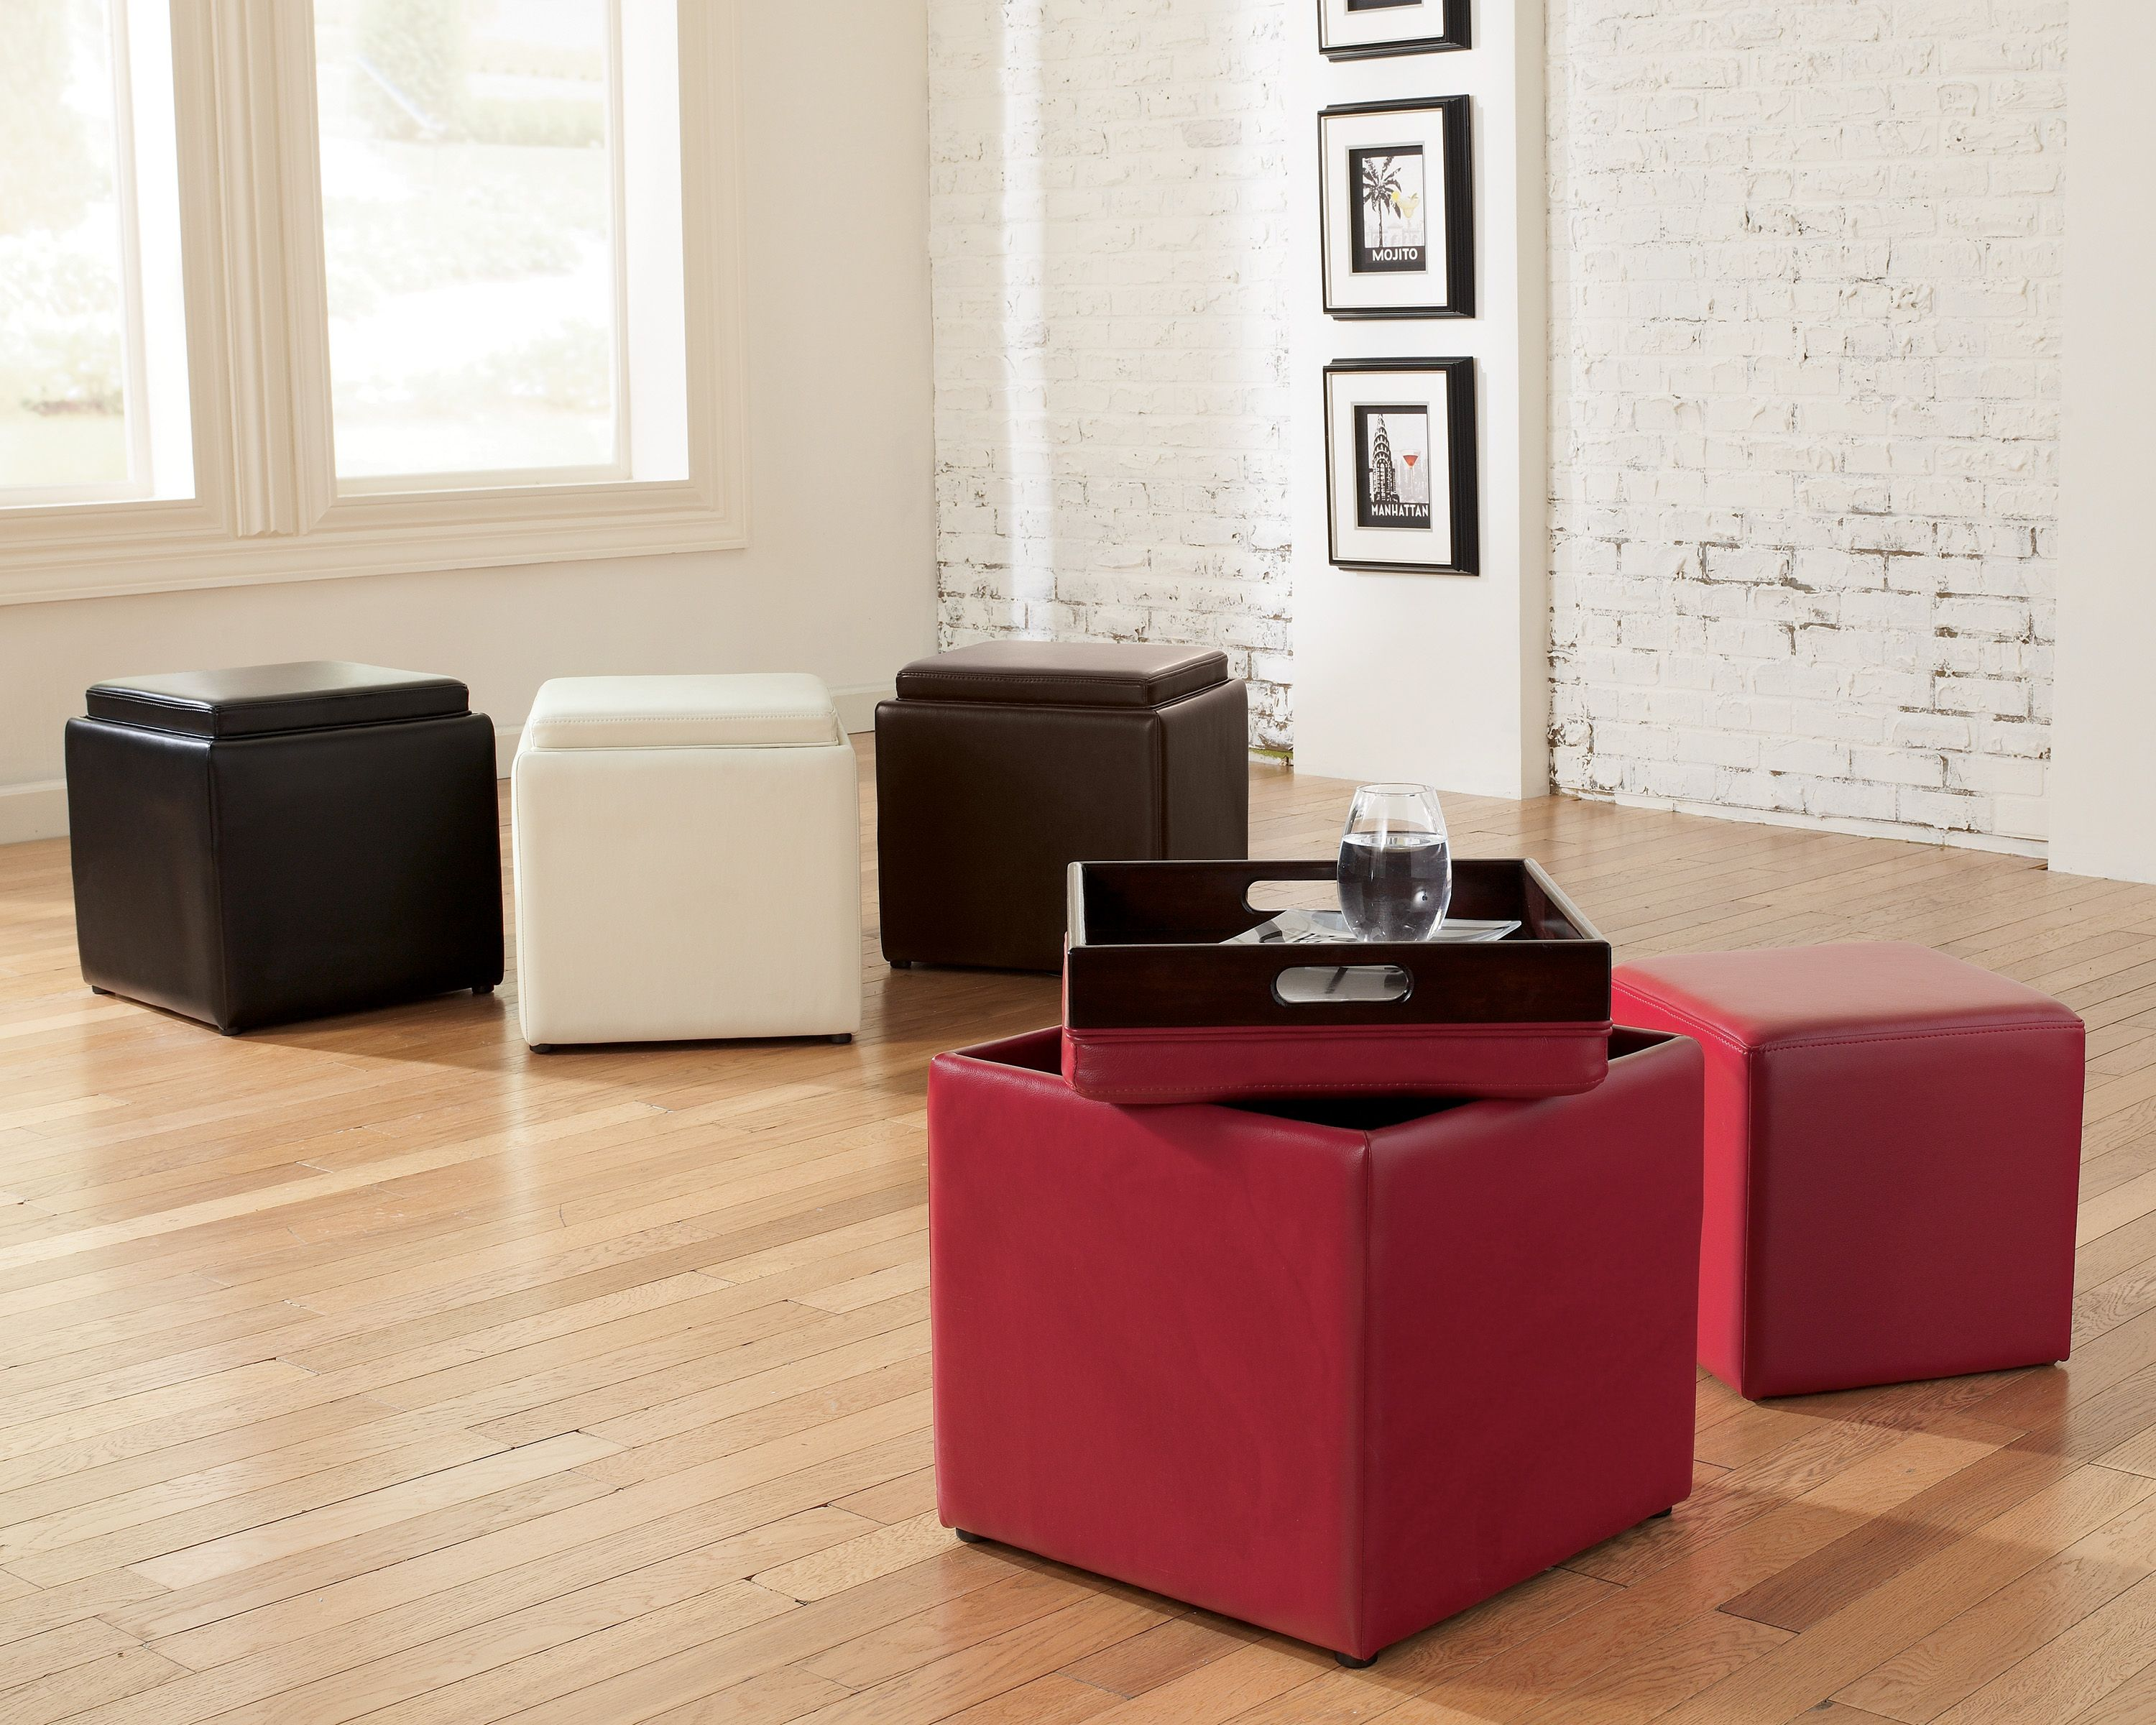 Ashley Furniture's cubit comes in various colors such as scarlet, ivory, and chocolate. Great pieces of furniture that can store your belongings.